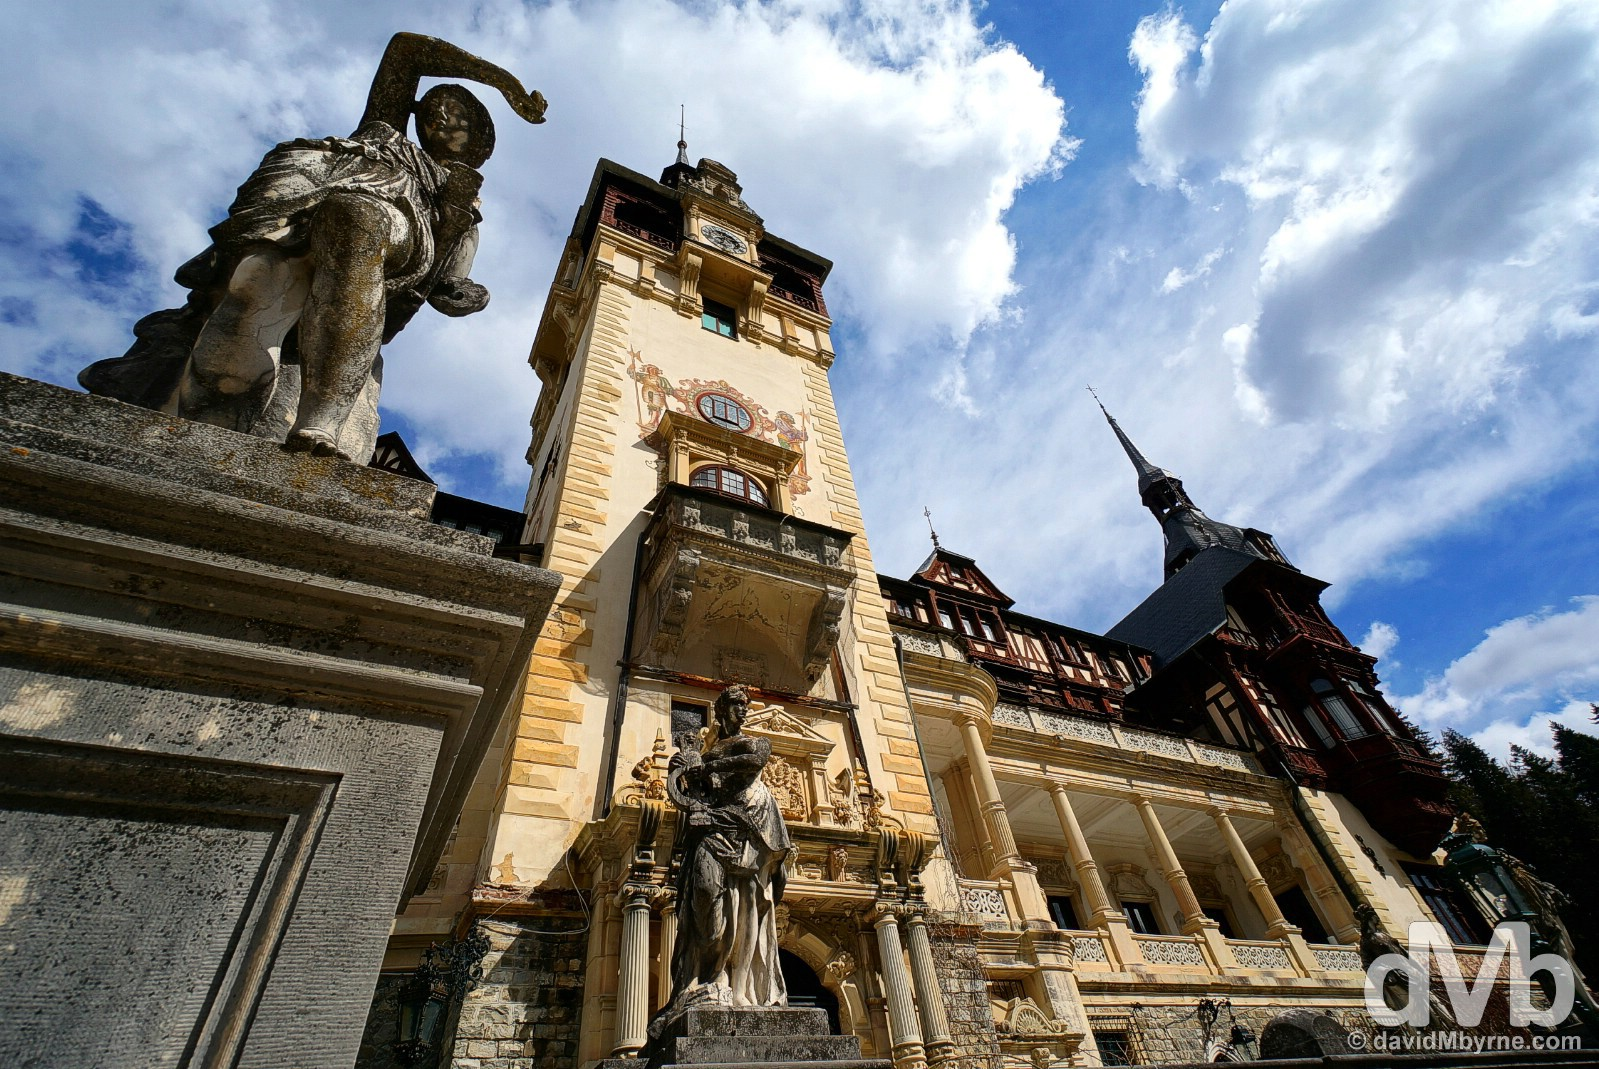 Fronting Peles Castle, Romania. April 2, 2015.